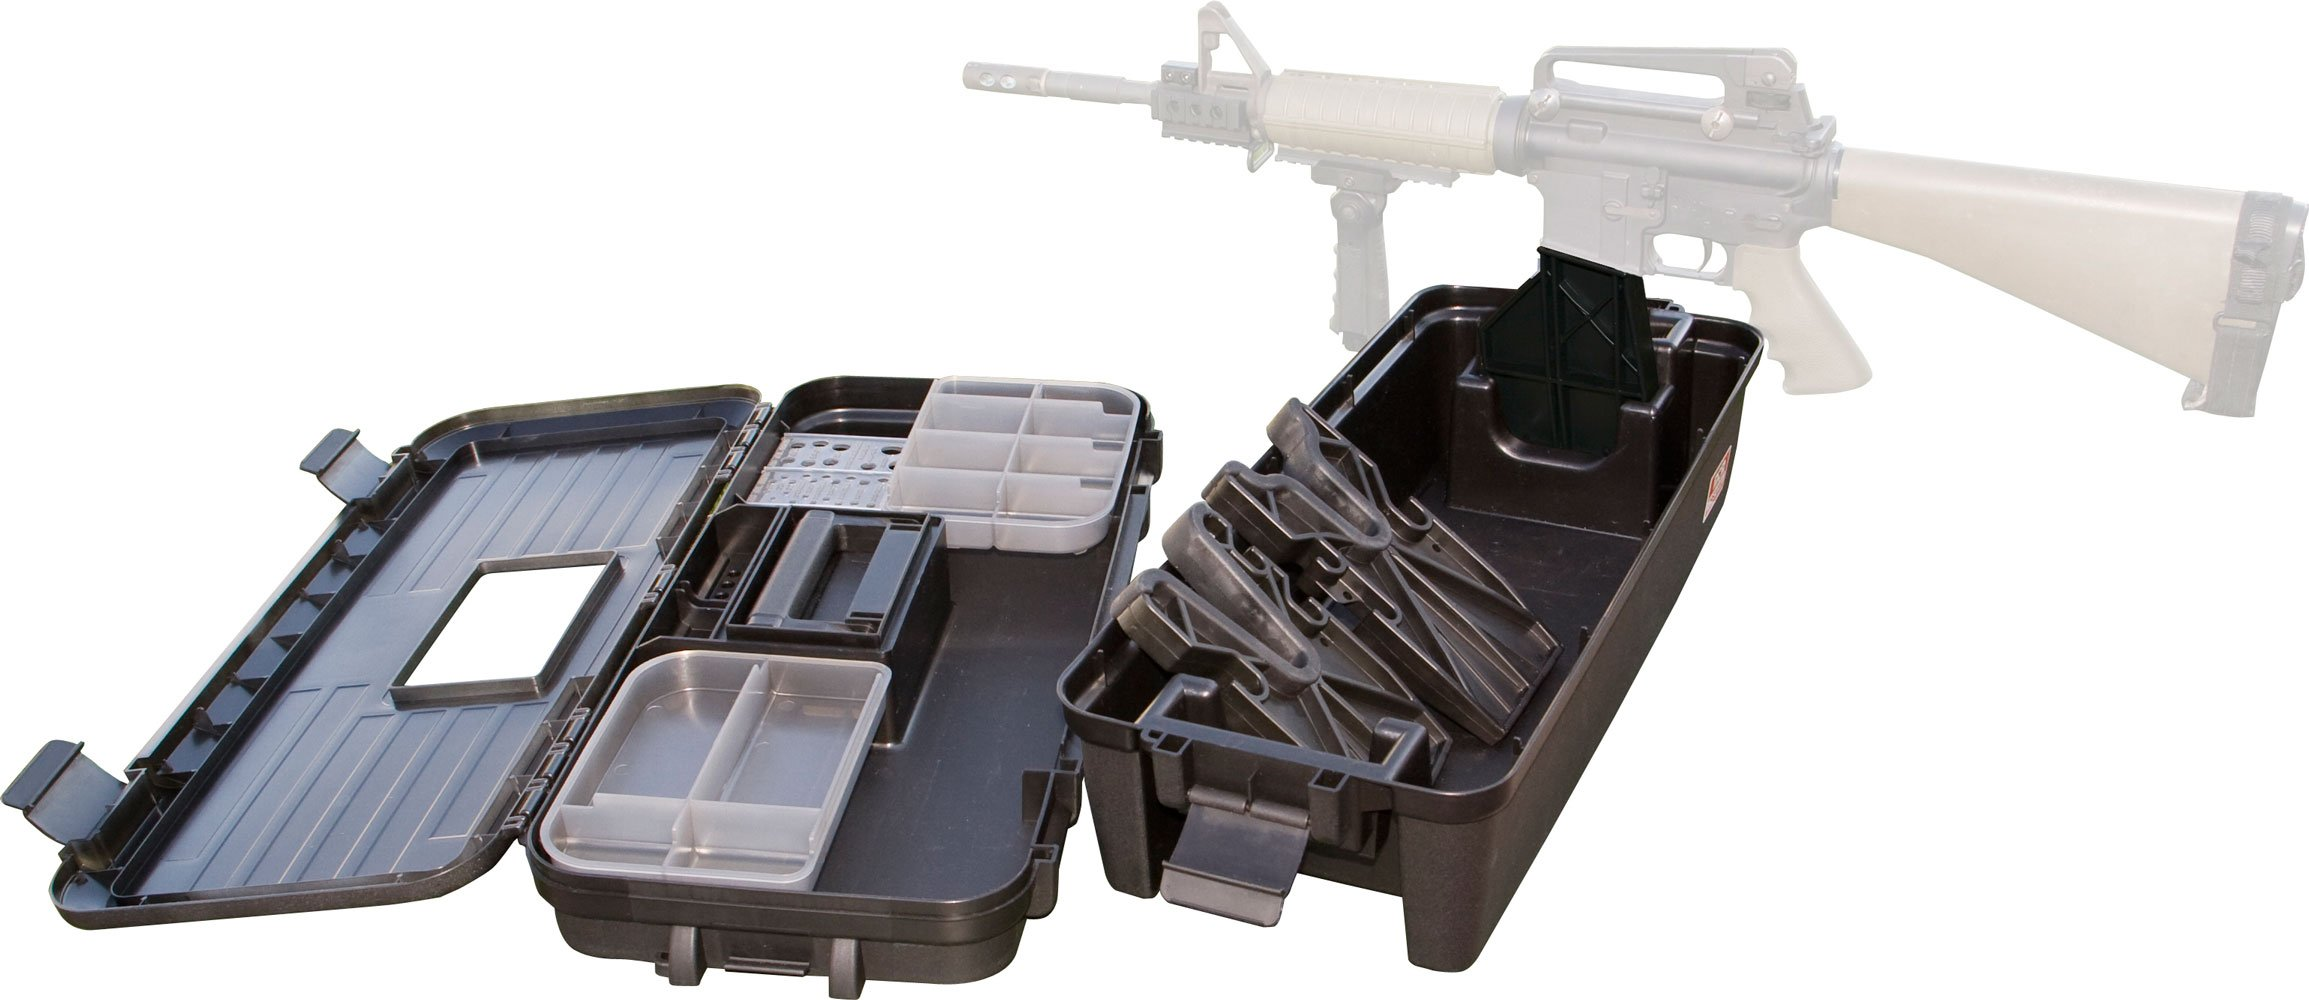 MTM Tactical Range Box - the Ultimate Shooters Case for AR's by MTM